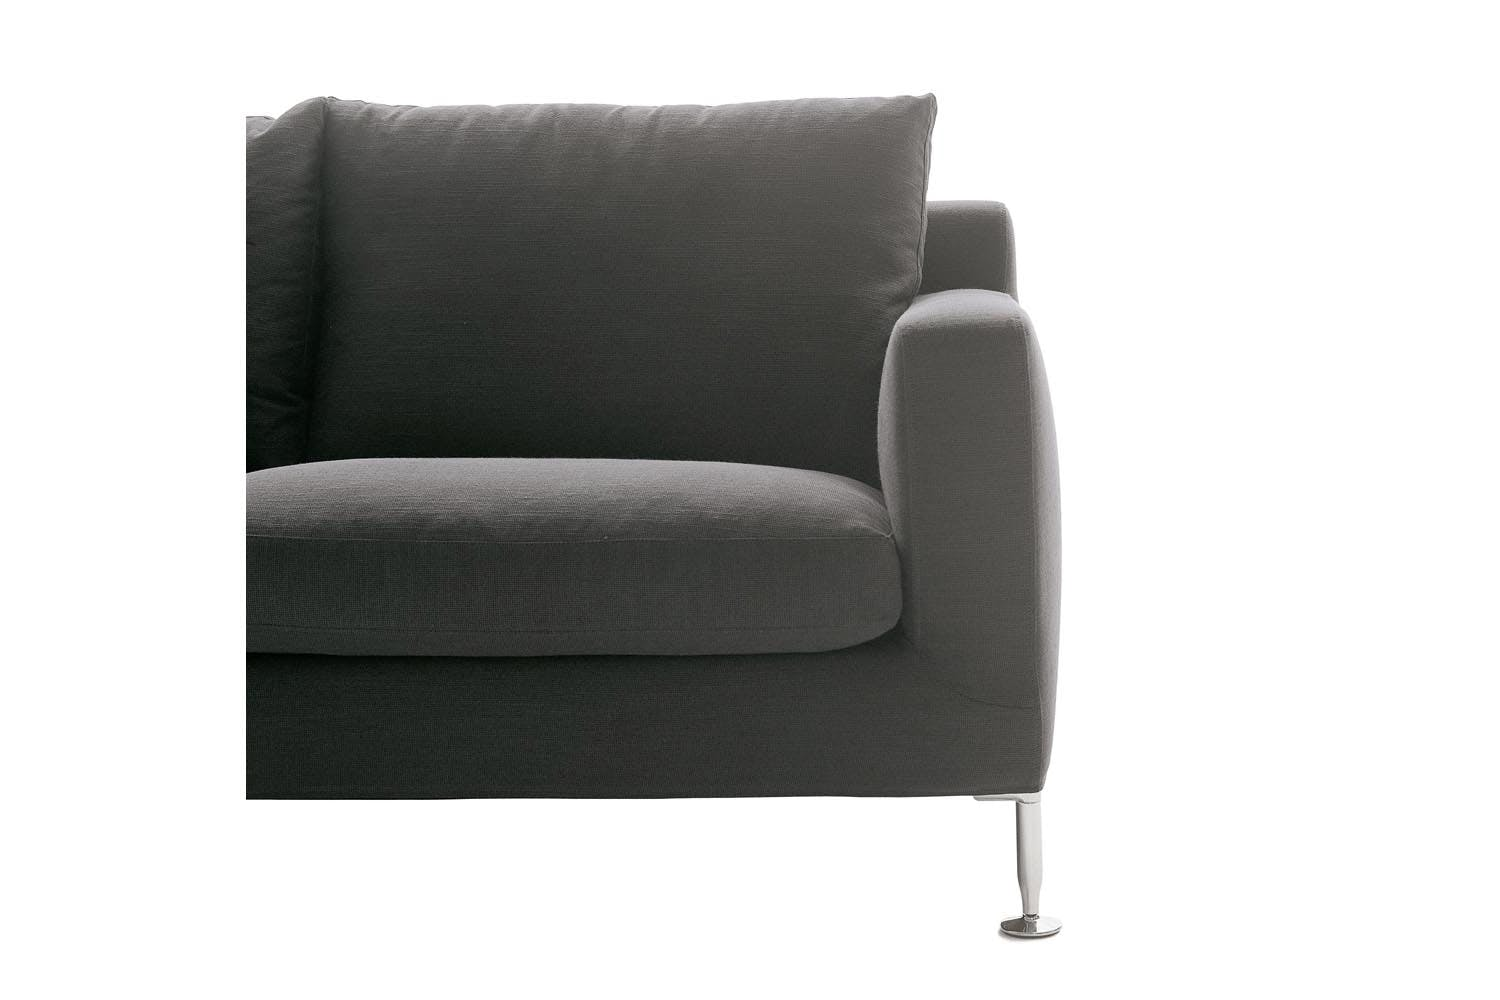 harry sofa by antonio citterio for b b italia space furniture. Black Bedroom Furniture Sets. Home Design Ideas